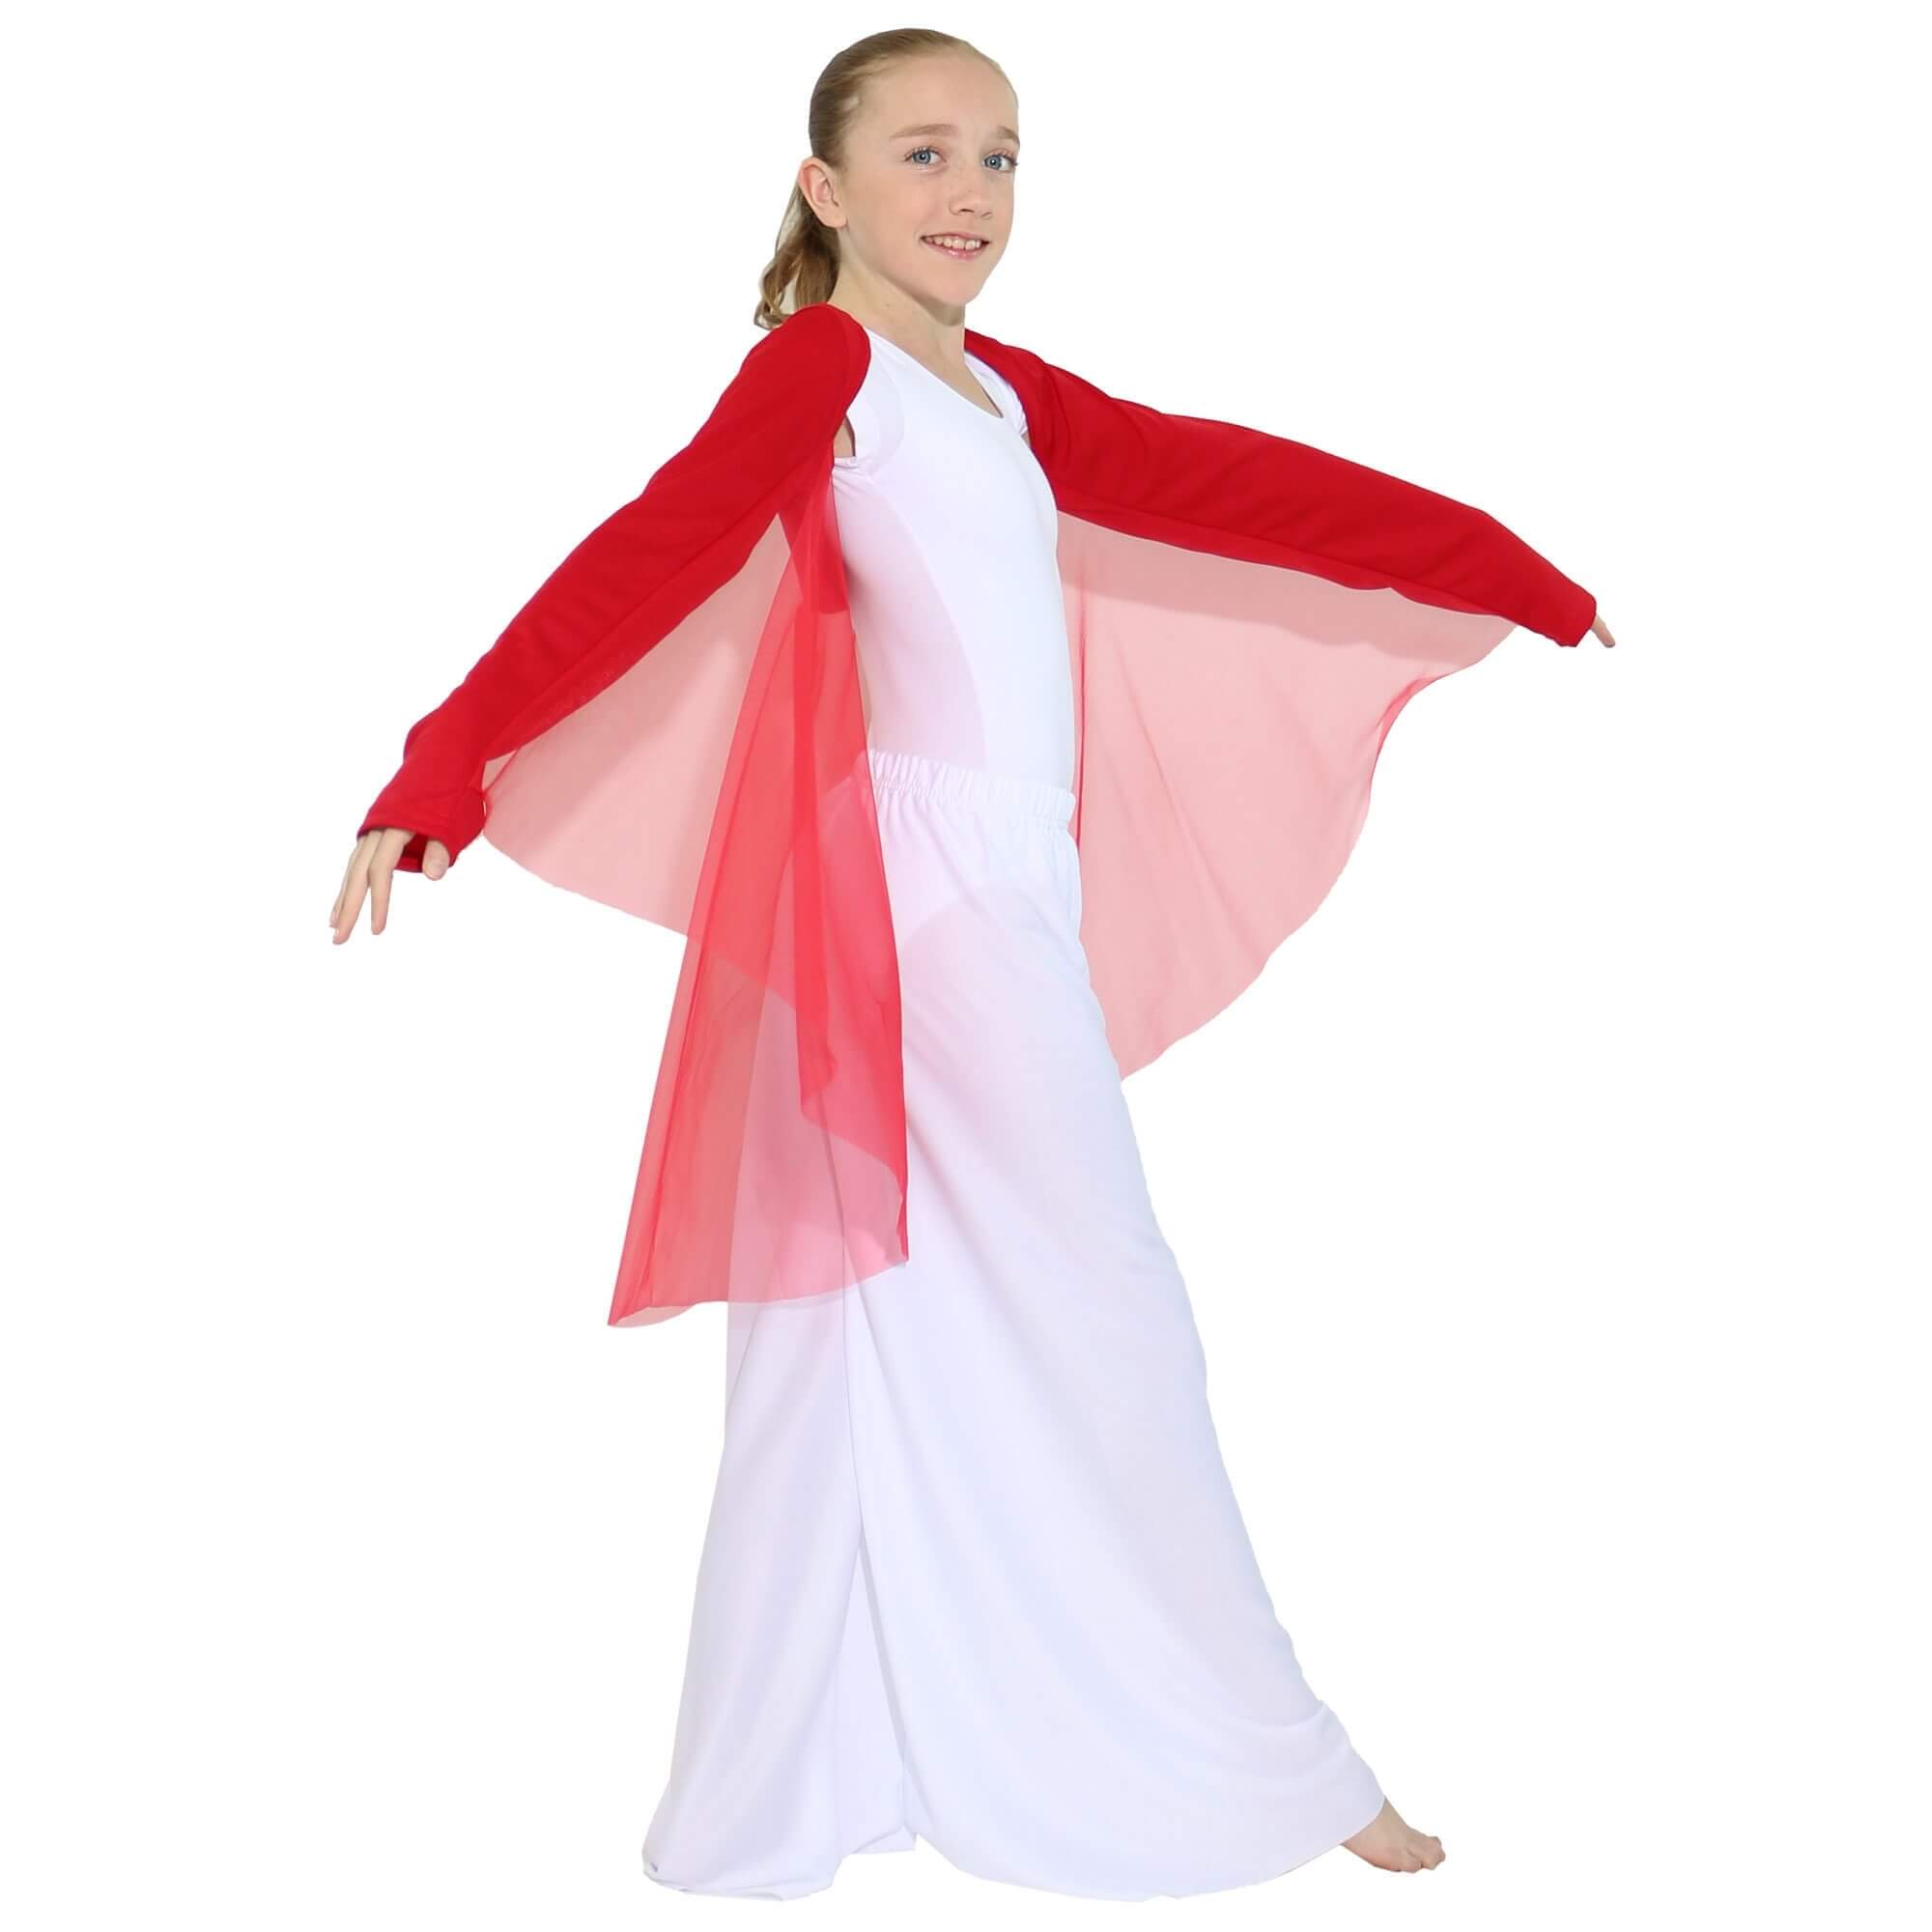 Danzcue Child Worship Angel Wing Shrug